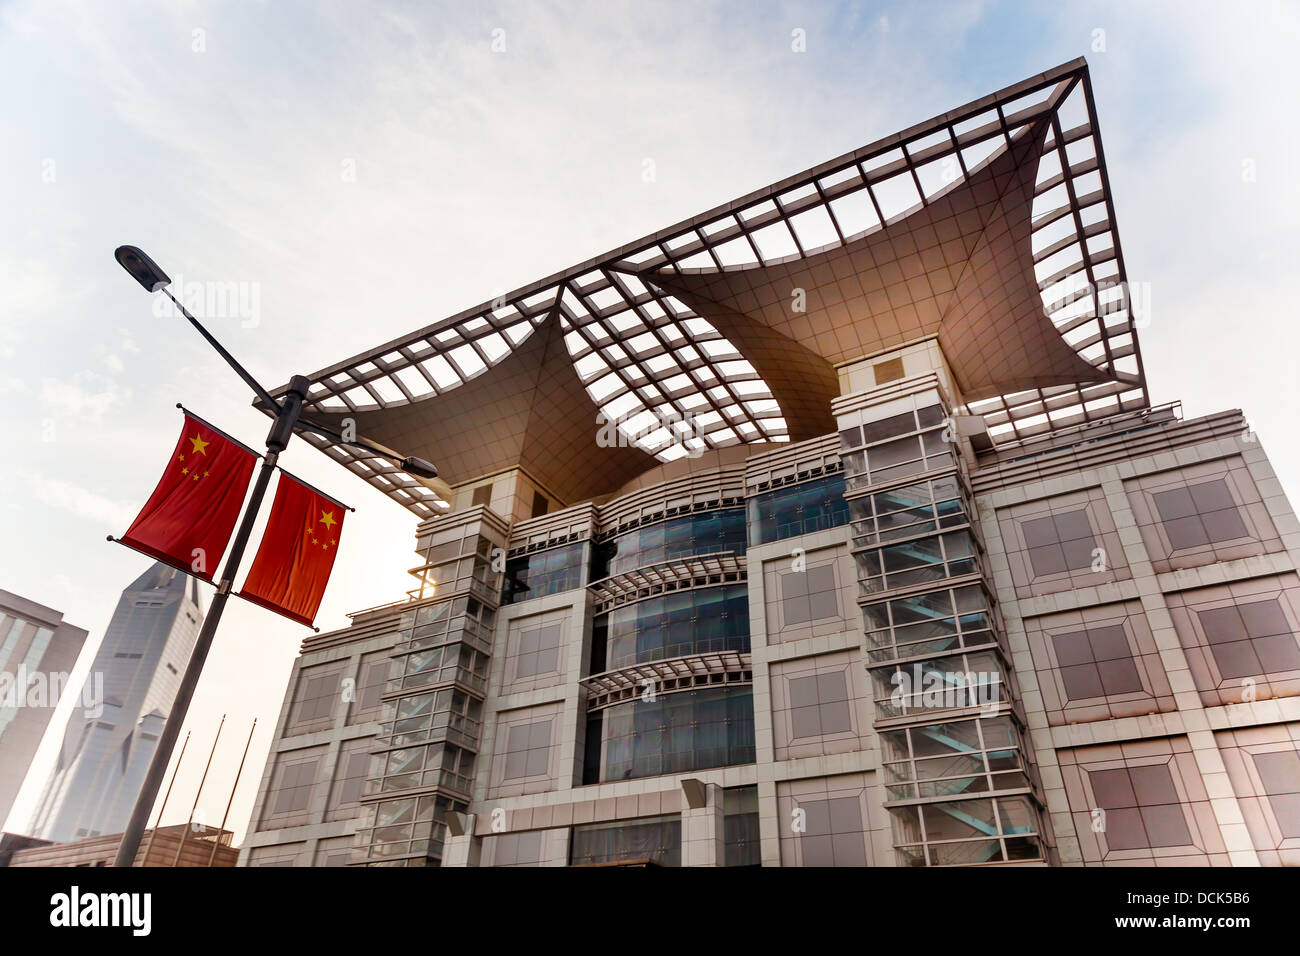 Urban Planning Exhibition Hall Museum Modern Building People's Square Shanghai China with Flag - Stock Image